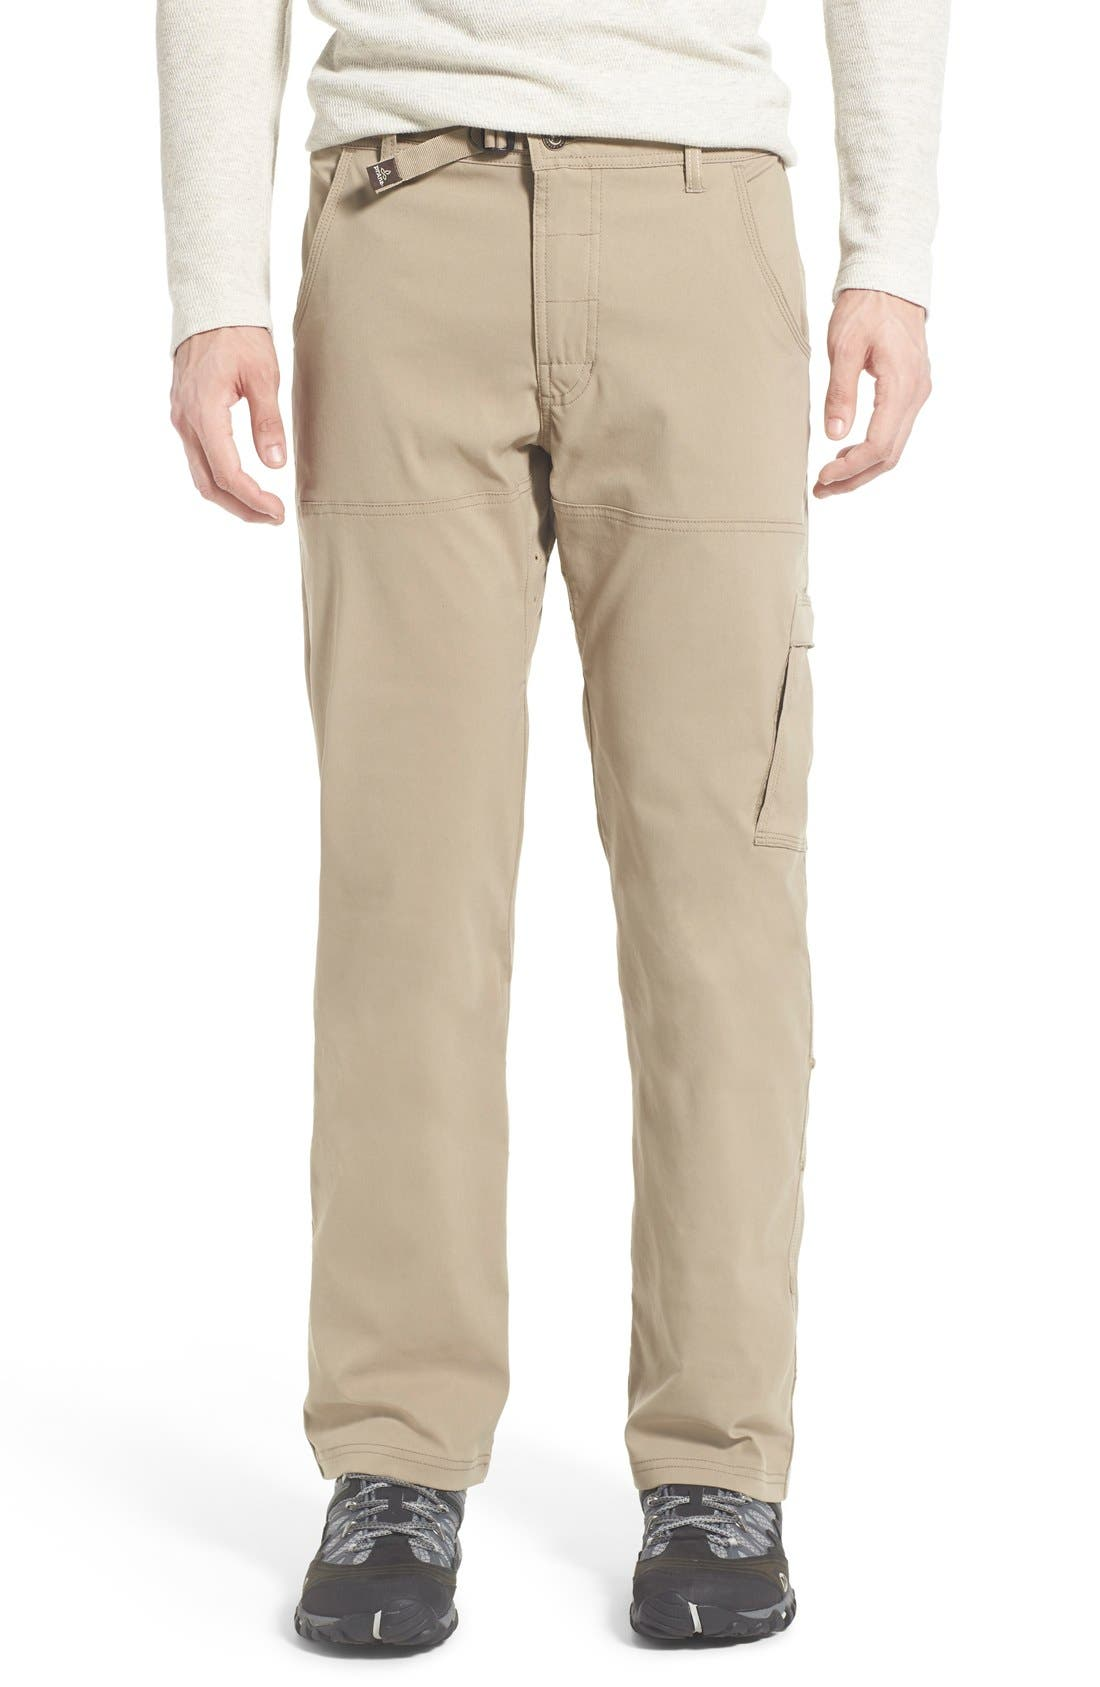 prAna Zion Stretch Hiking Pants